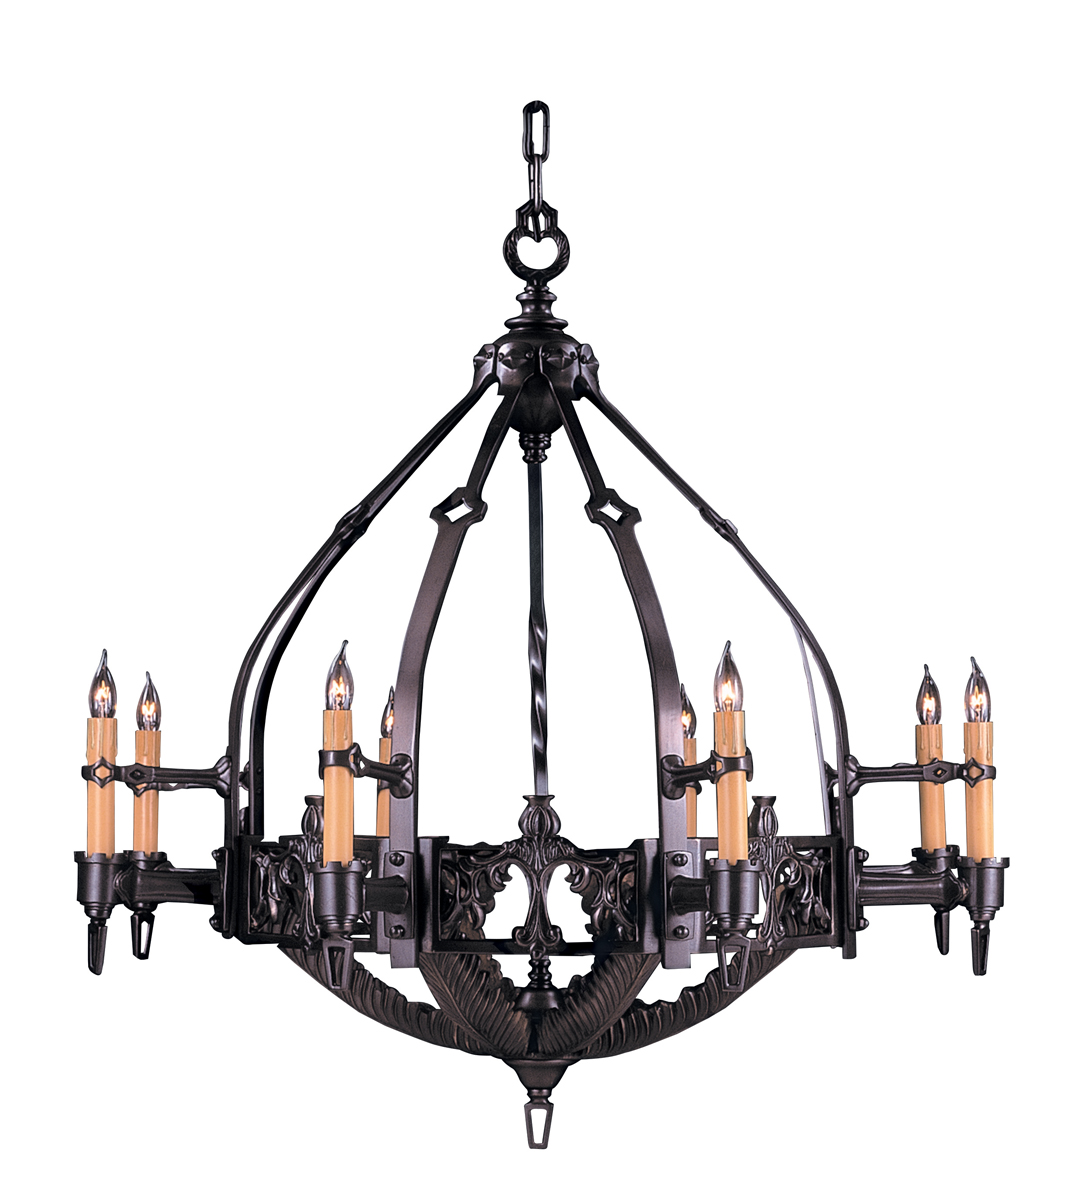 Framburg Lighting (1658) 8-Light Centennial Foyer Chandelier